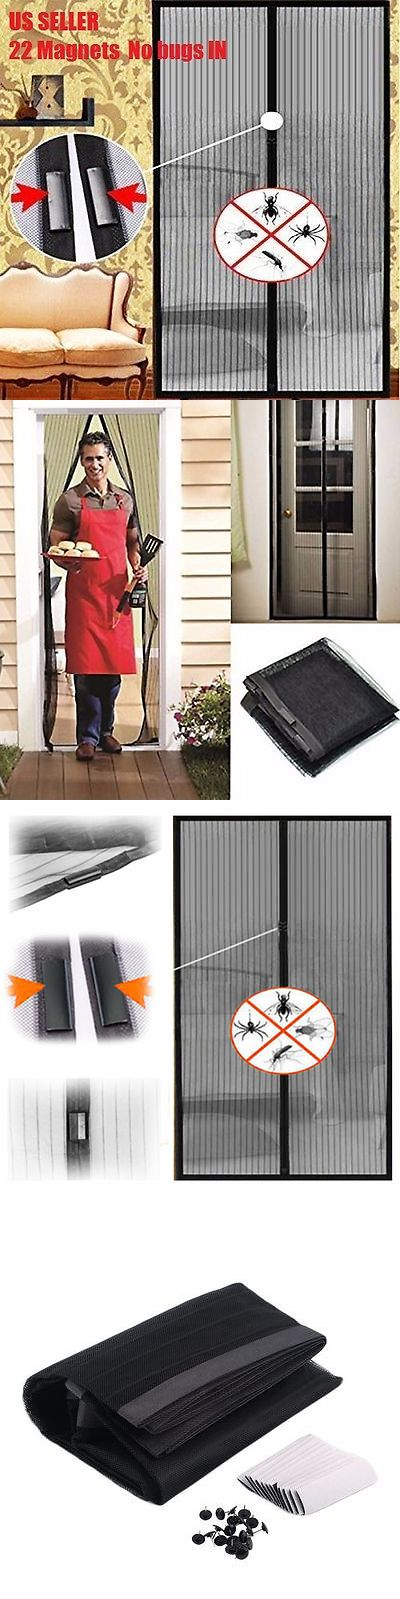 Other Window Accessories 180114: 22 Magnets Magic Mesh Screen Net Door Mesh Anti Mosquito Bug Curtain Nobox Usa -> BUY IT NOW ONLY: $99.99 on eBay!